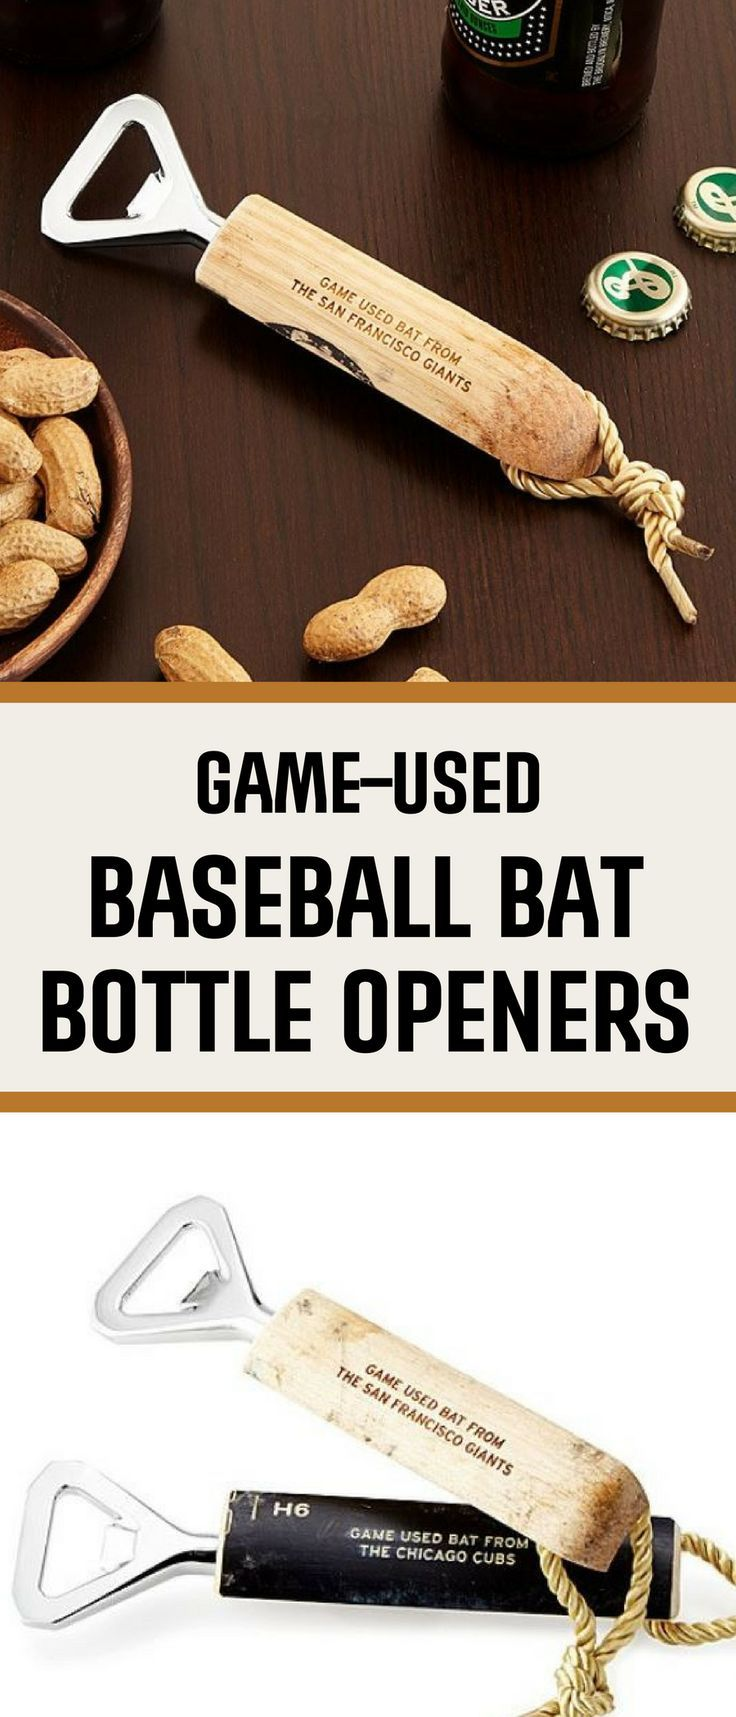 Baseball bat bottle opener | wood is from actual game-used bat | great man cave beer accessory | father's day gift idea | husband birthday gift | …